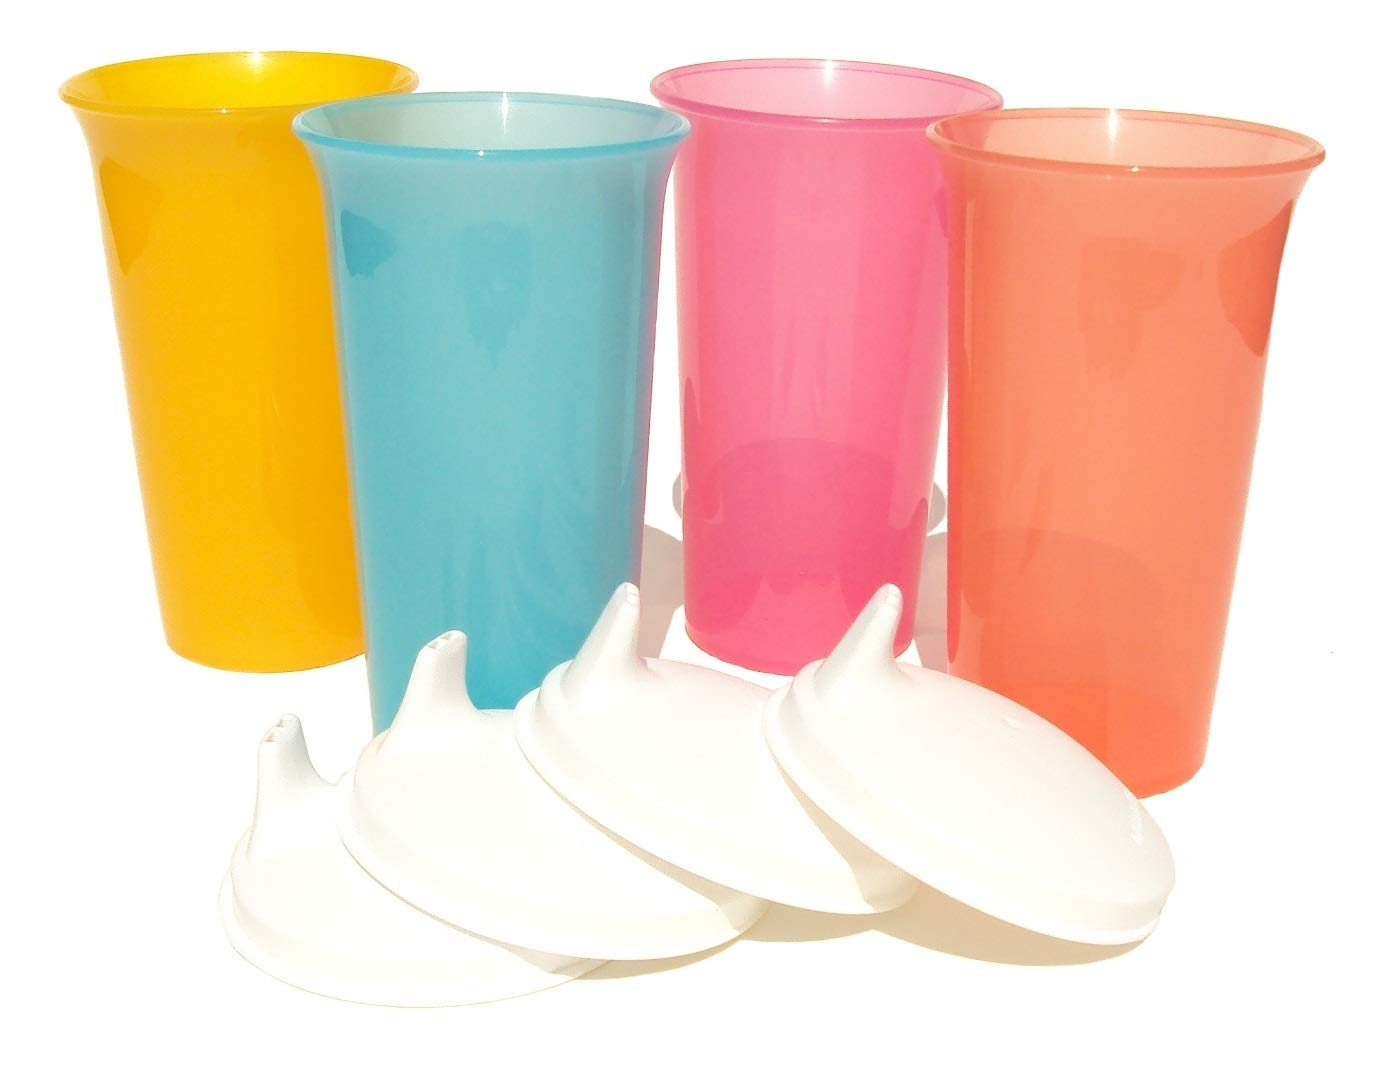 Tupperware 10.5 oz Big Bell Tumblers Set of 4 Sippy Cups White Sipper Seals